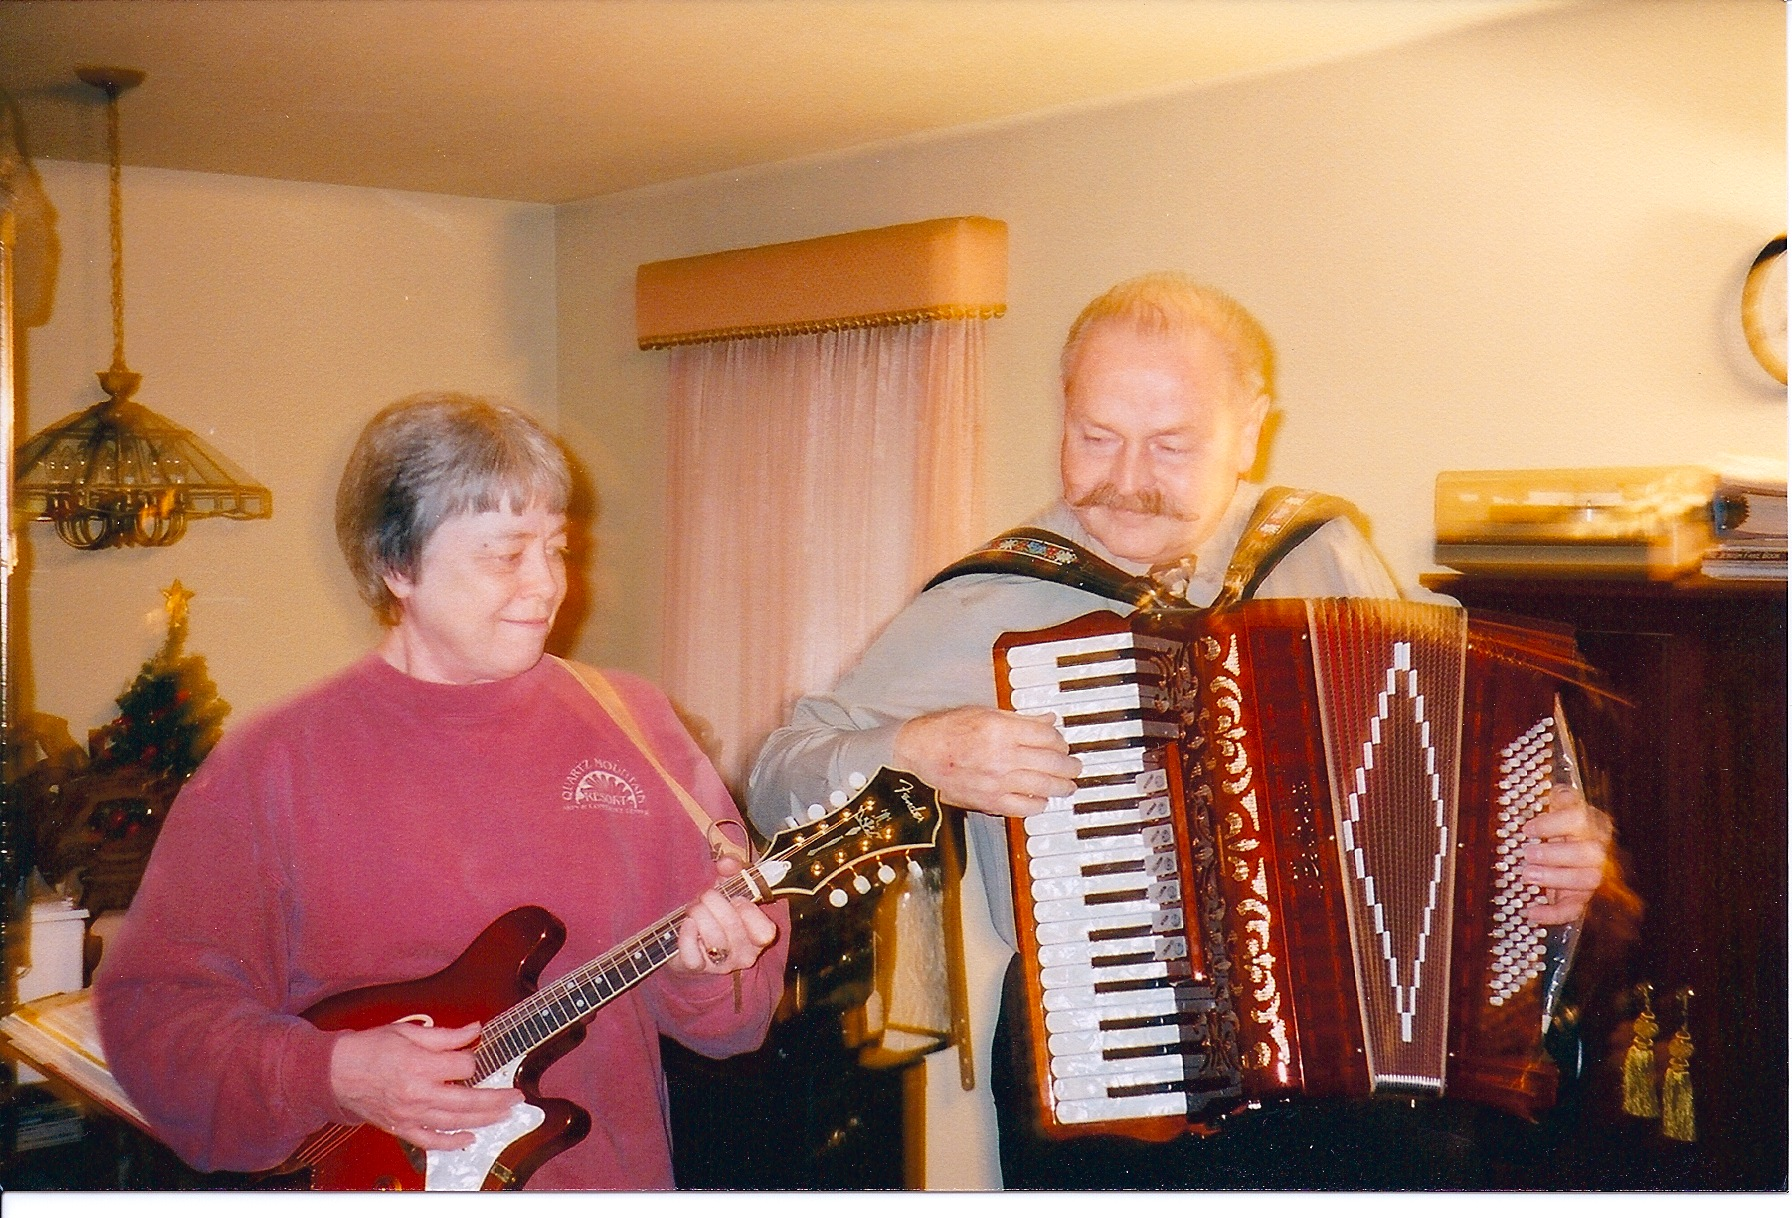 Martha and Nick jamming